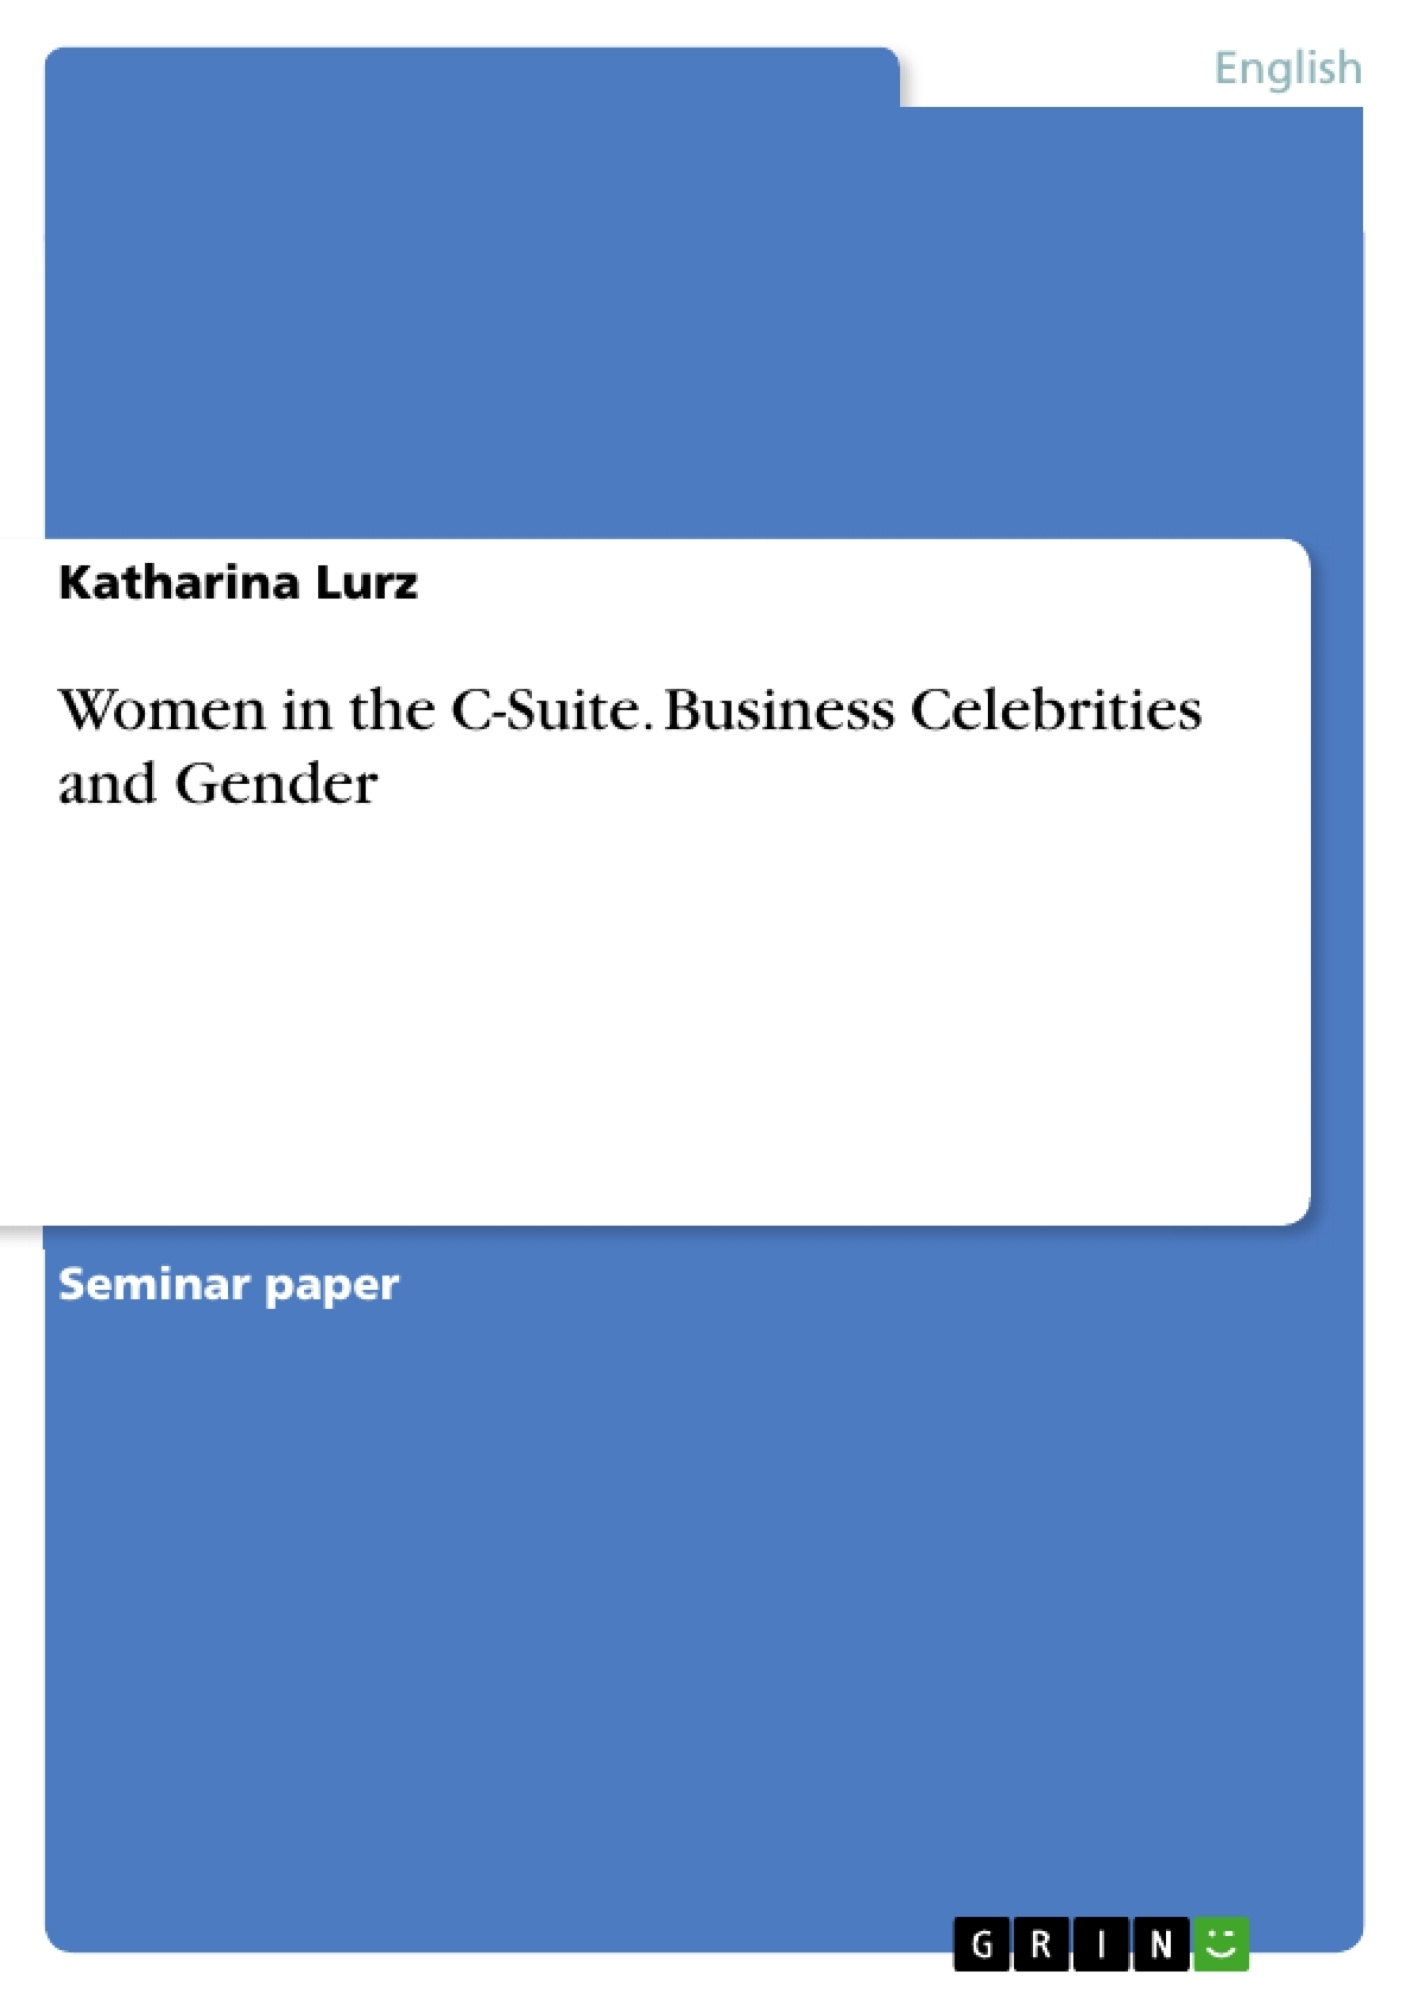 Title: Women in the C-Suite. Business Celebrities and Gender